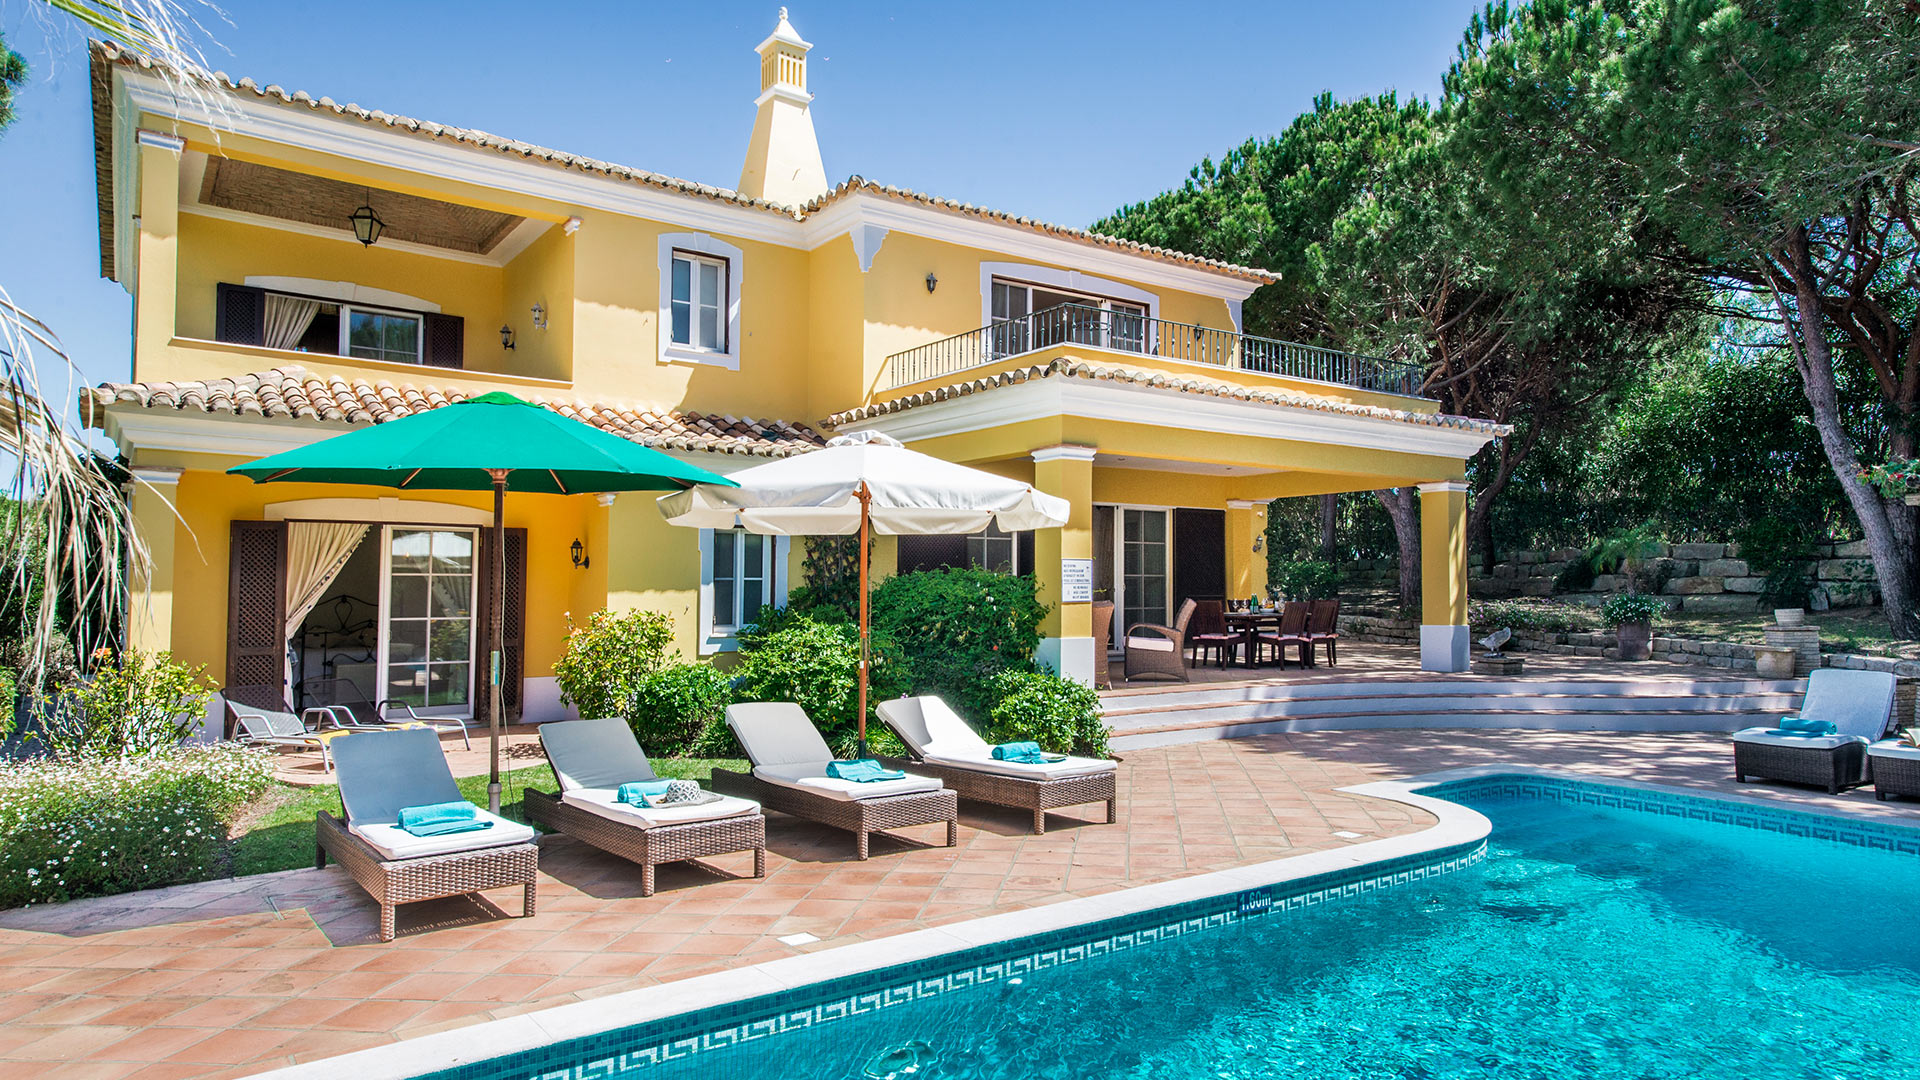 Villa Villa Piaz, Rental in Algarve